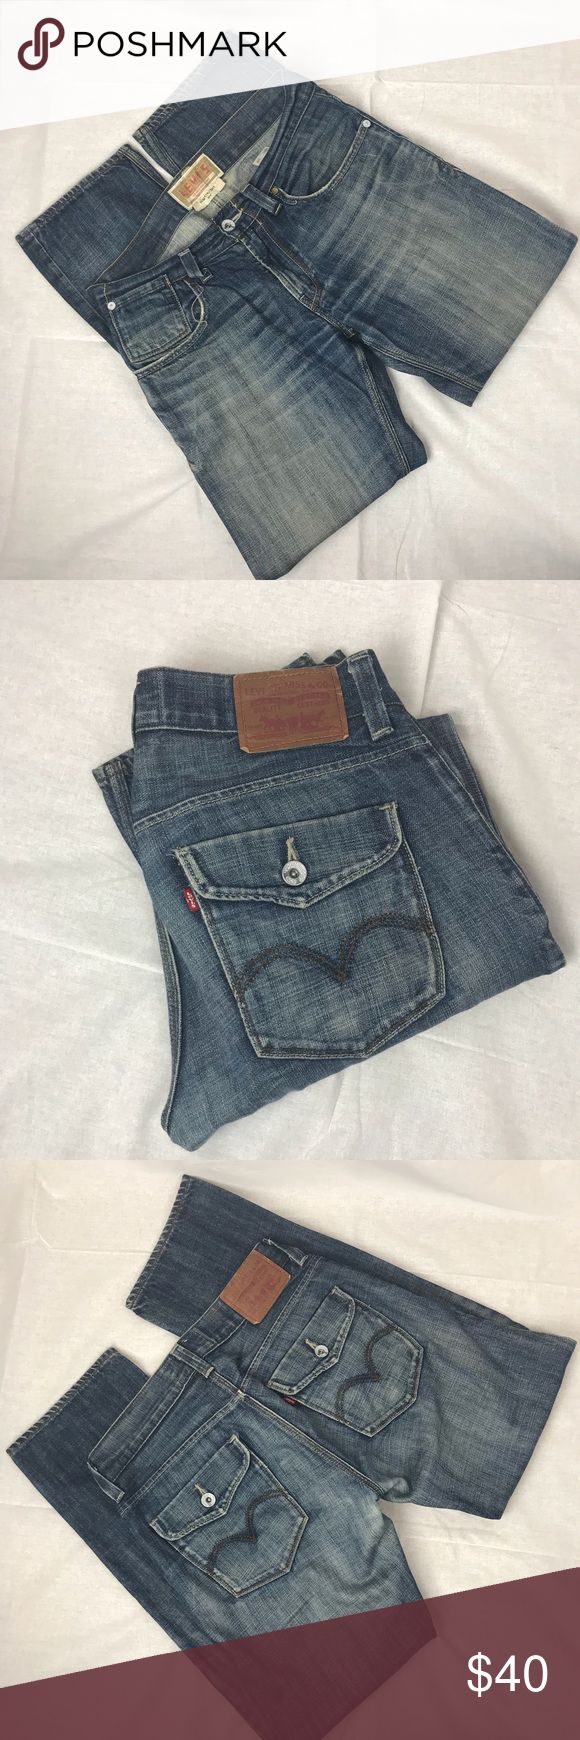 Men's Levi Retro Style Slim Straight 514 Jeans Nice pair of a classic icon! Men's Levi Retro Style Slim Straight 514 Jeans. 100% cotton. See photos and contact me with any questions prior to purchase. W31xL32 Levi's Jeans Slim Straight